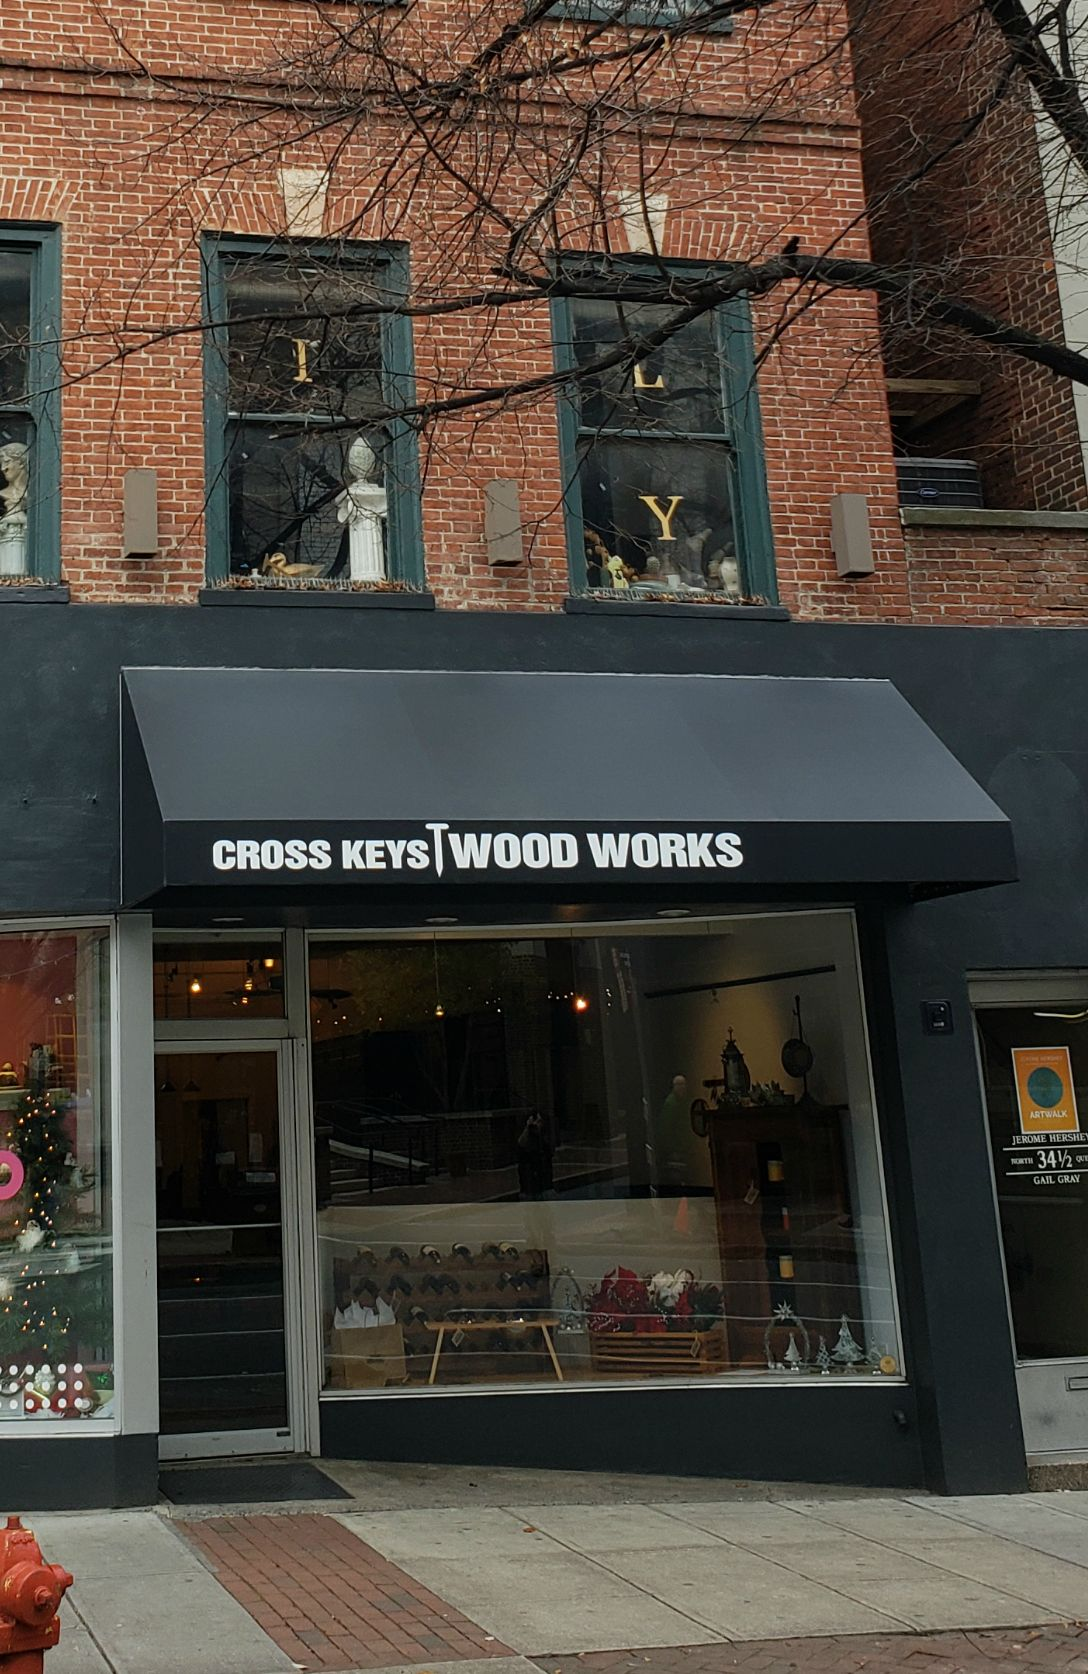 Cross Keys Wood Works Traditional Storefront Awning Kreider S Canvas Service Inc Store Fronts Crossed Key Awning